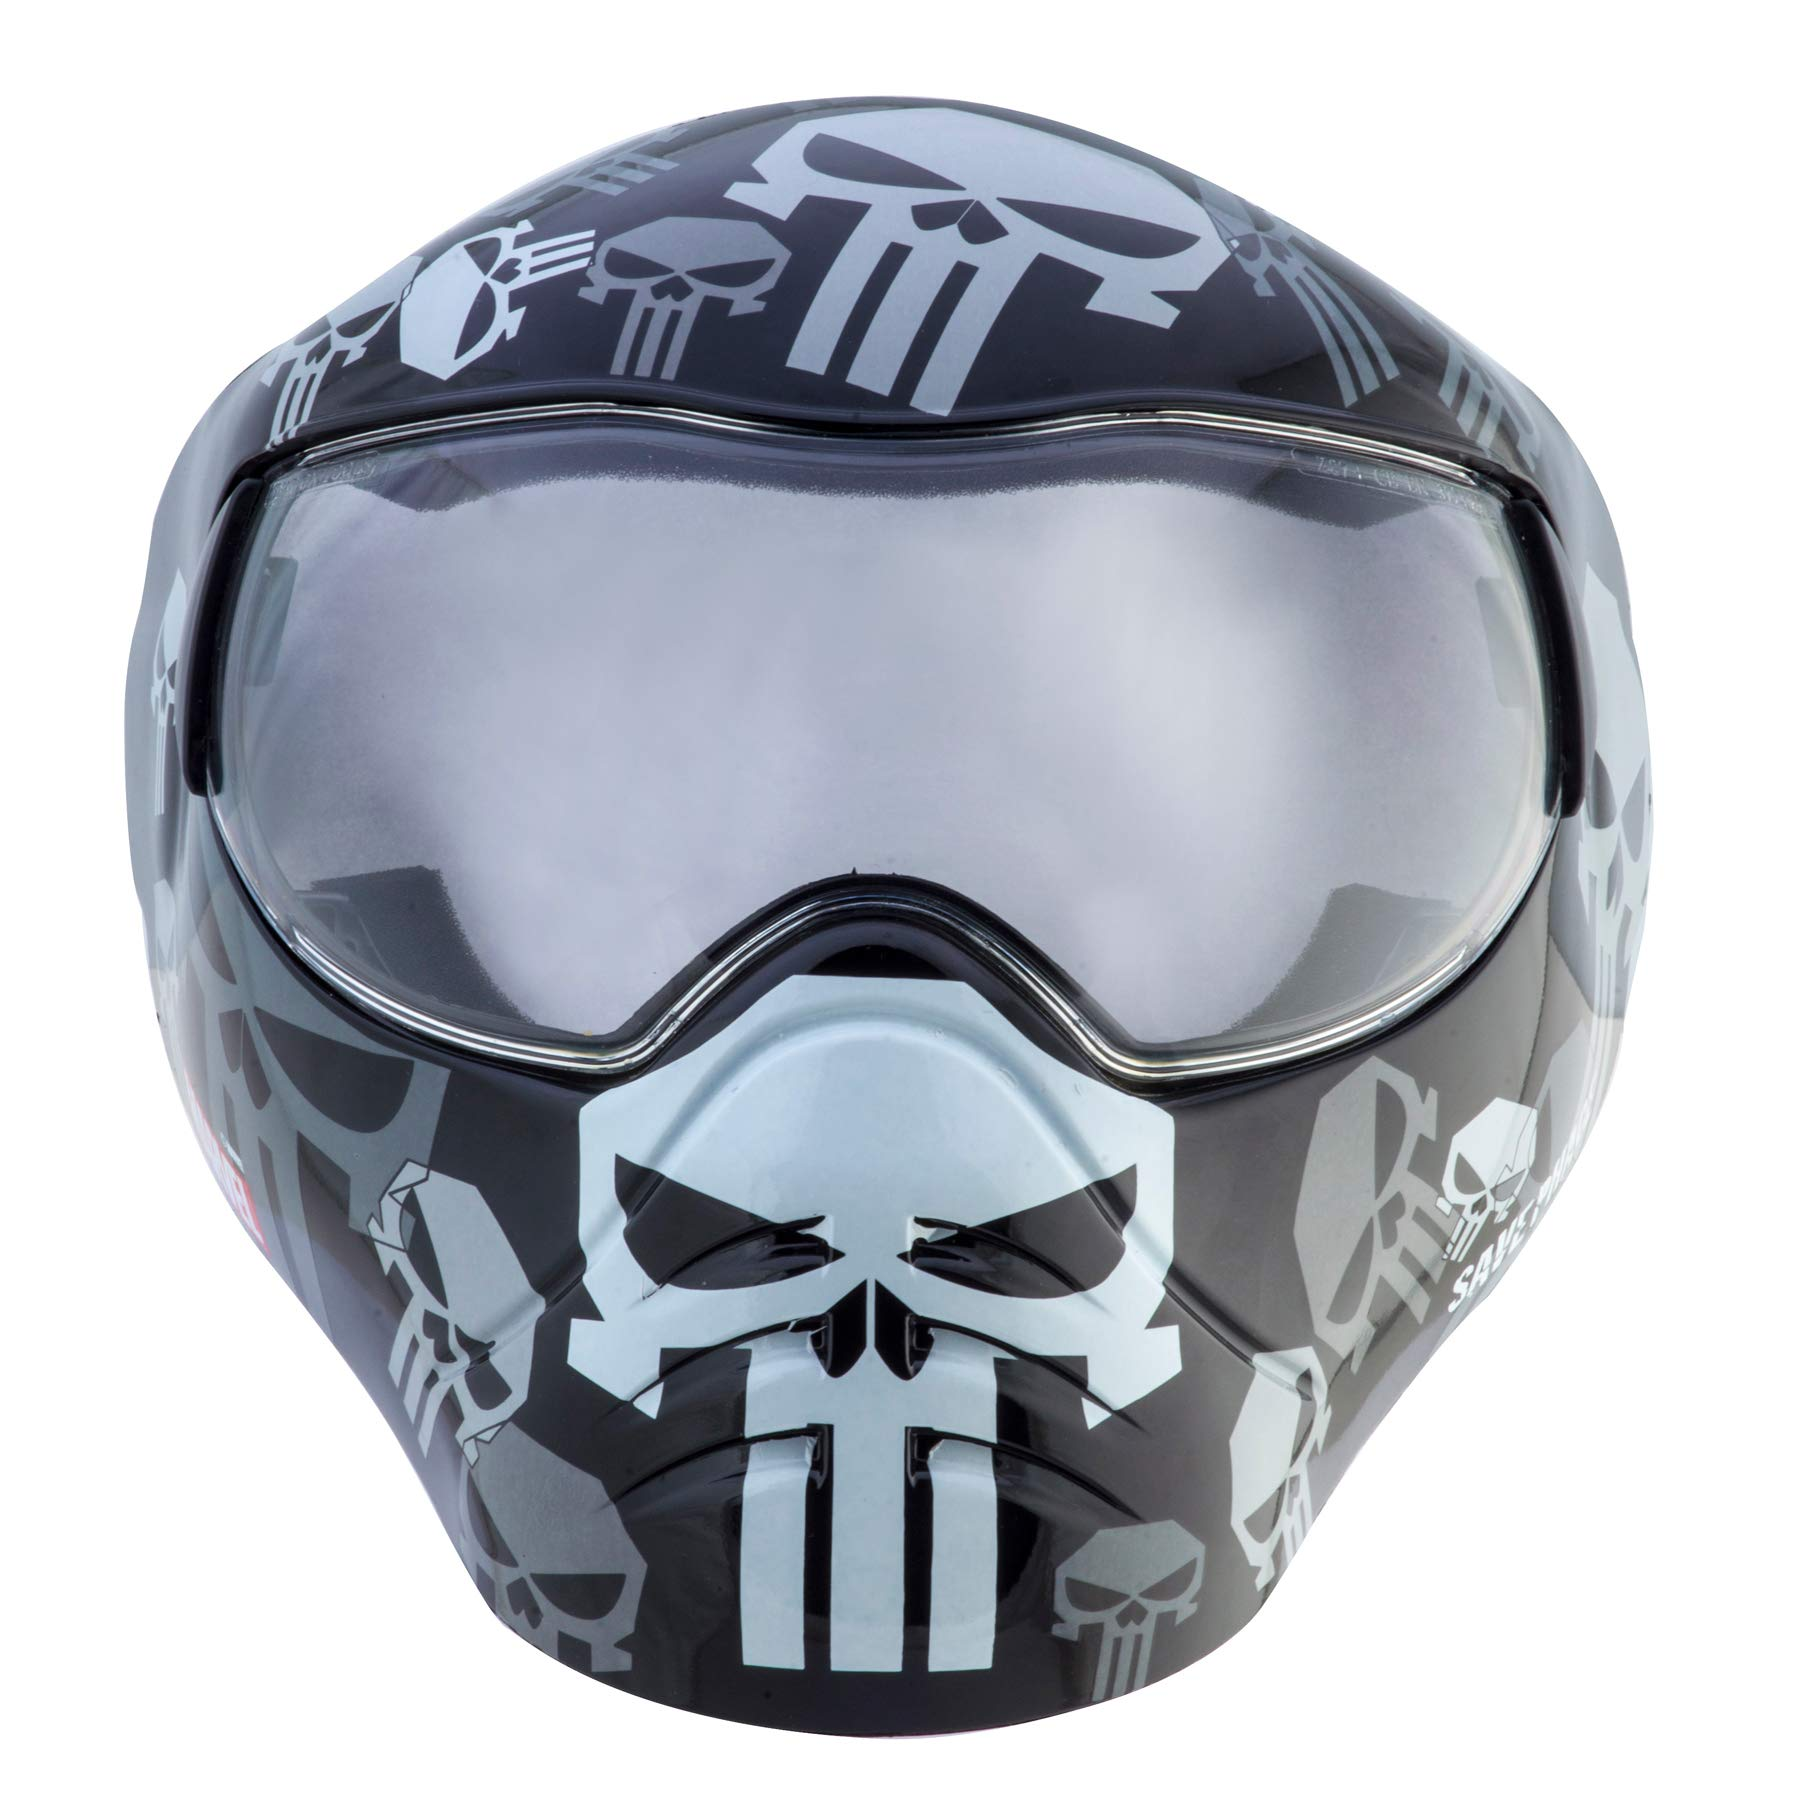 Save Phace 3012763 SUM Series Punisher Sport Utility Mask by Save Phace